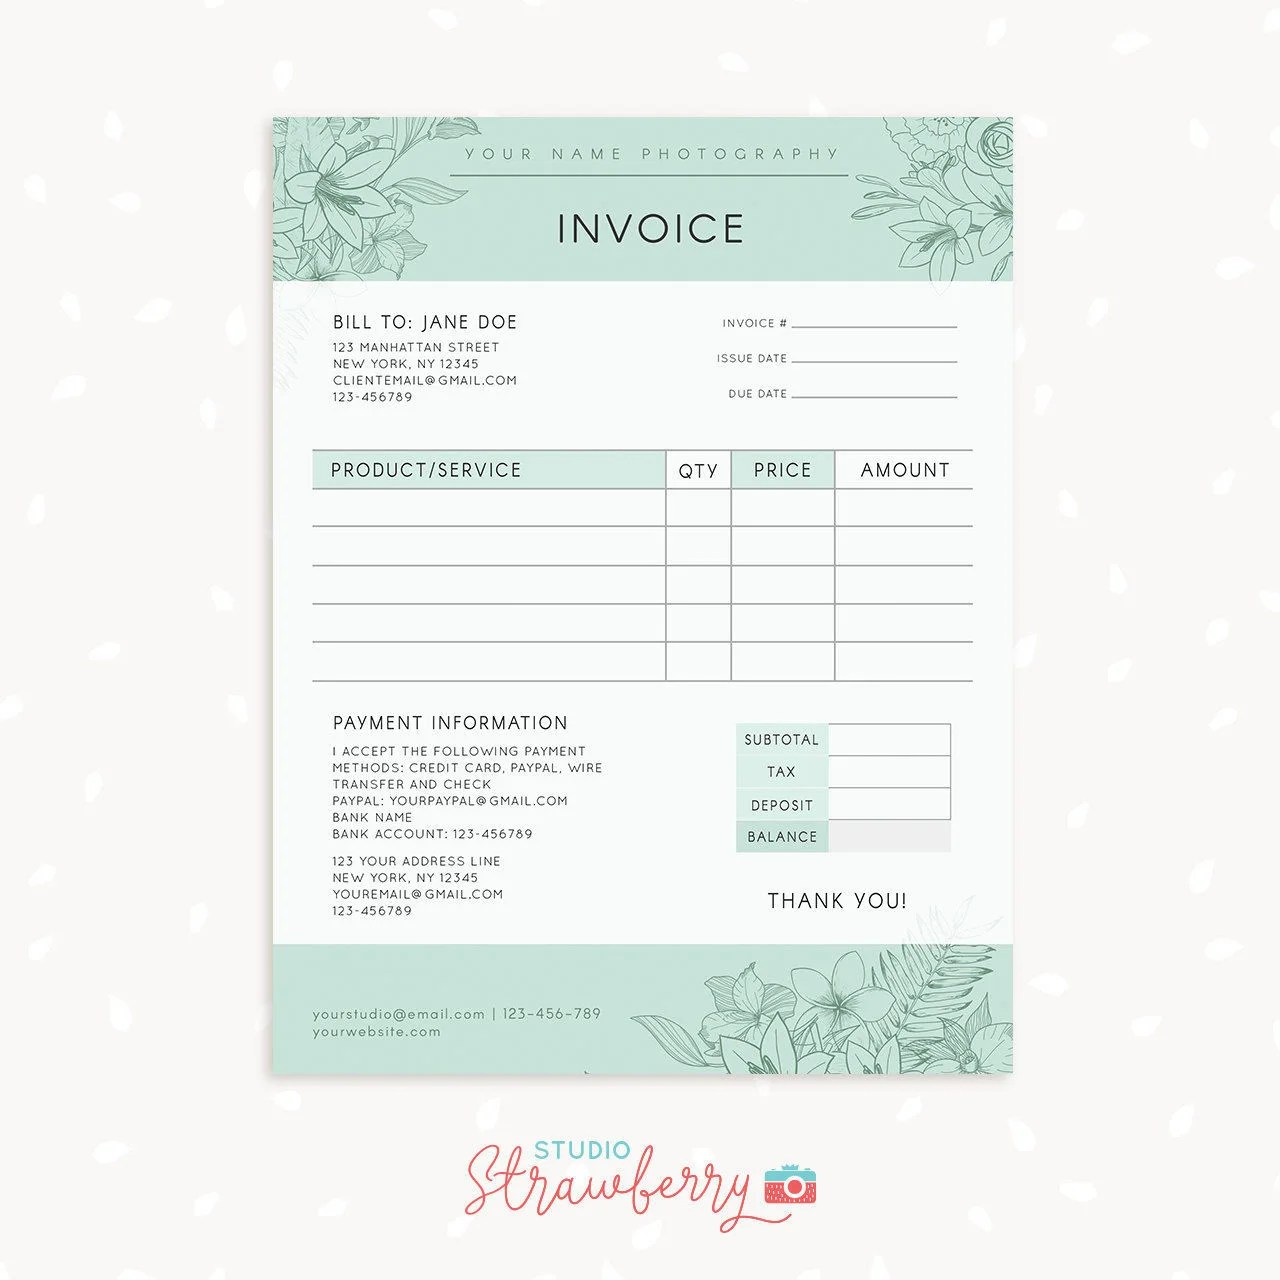 Invoice template Photography invoice Business invoice - photography invoice template